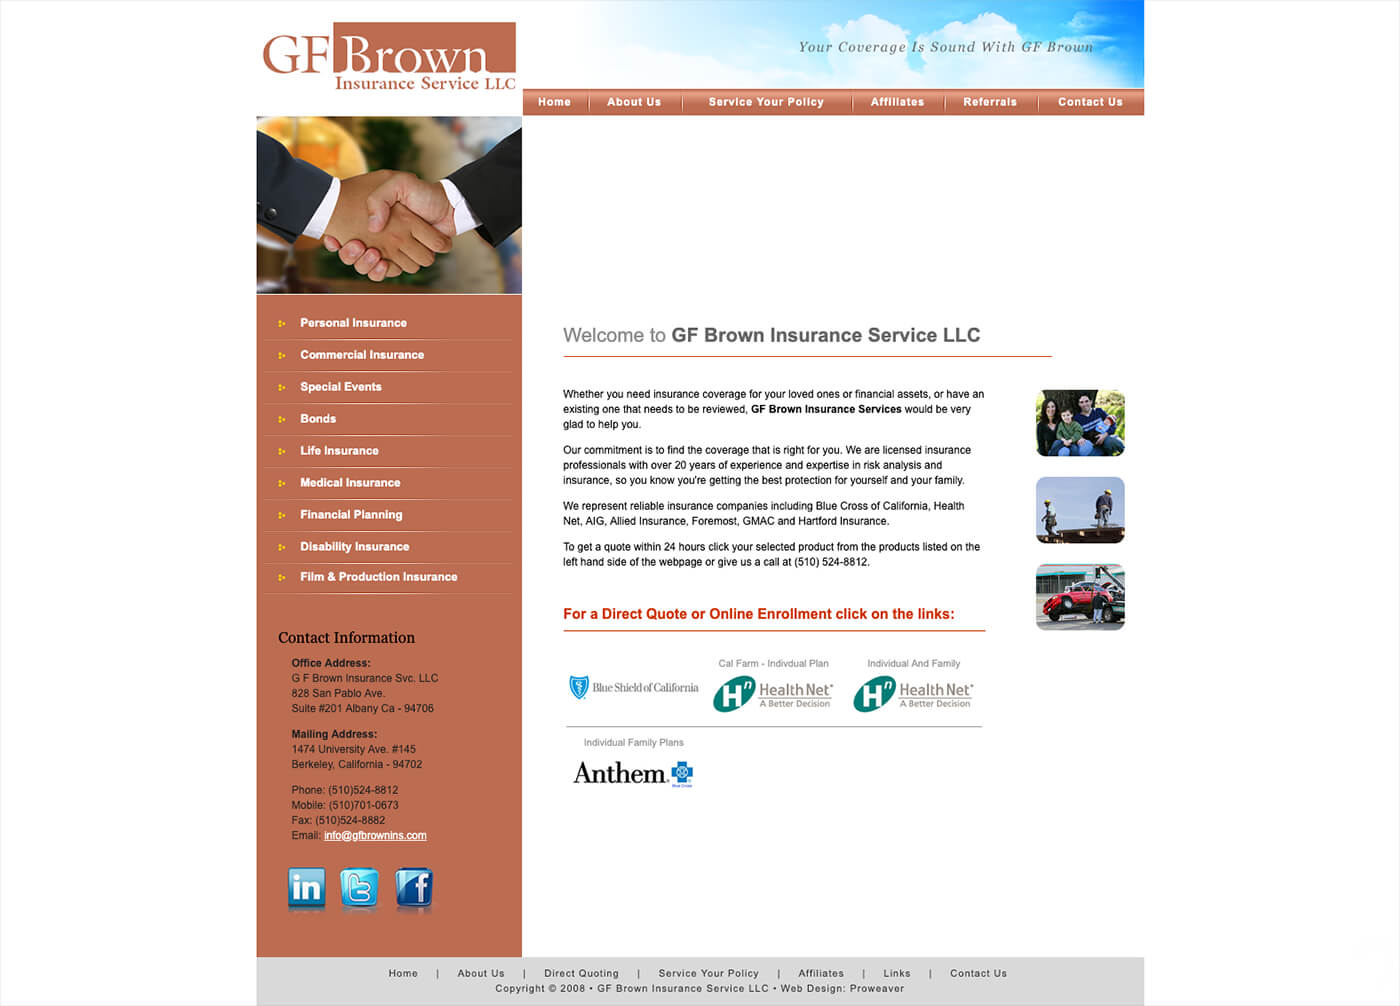 GF Brown Insurance Services website before the website re-design